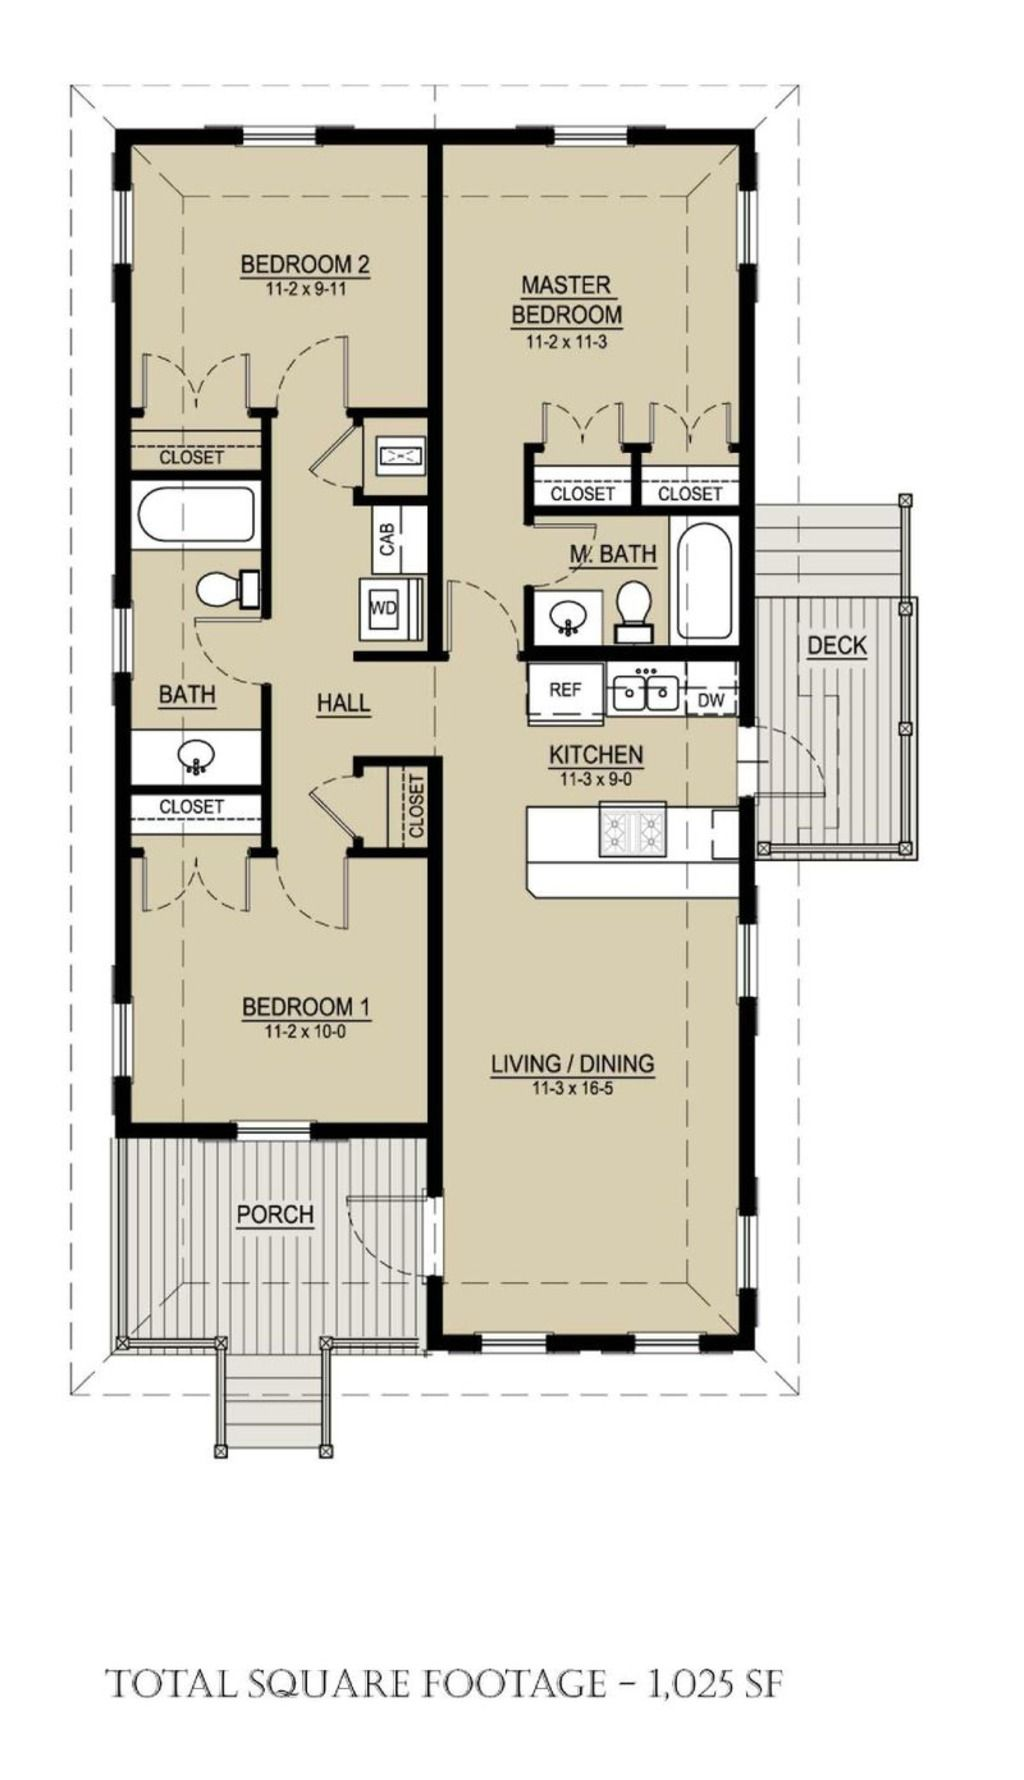 Cottage Style House Plan 3 Beds 2 Baths 1025 Sq Ft Plan 536 3